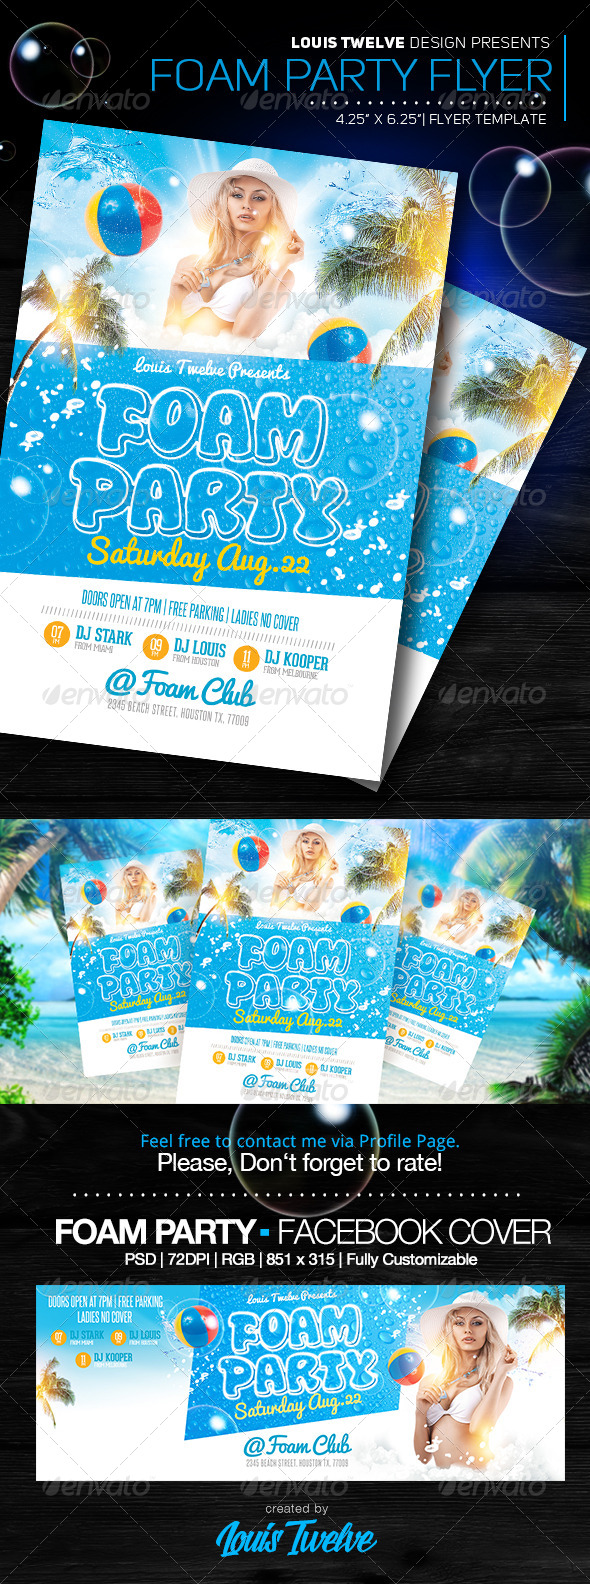 Foam Party v3 | Flyer + FB Cover - Clubs & Parties Events